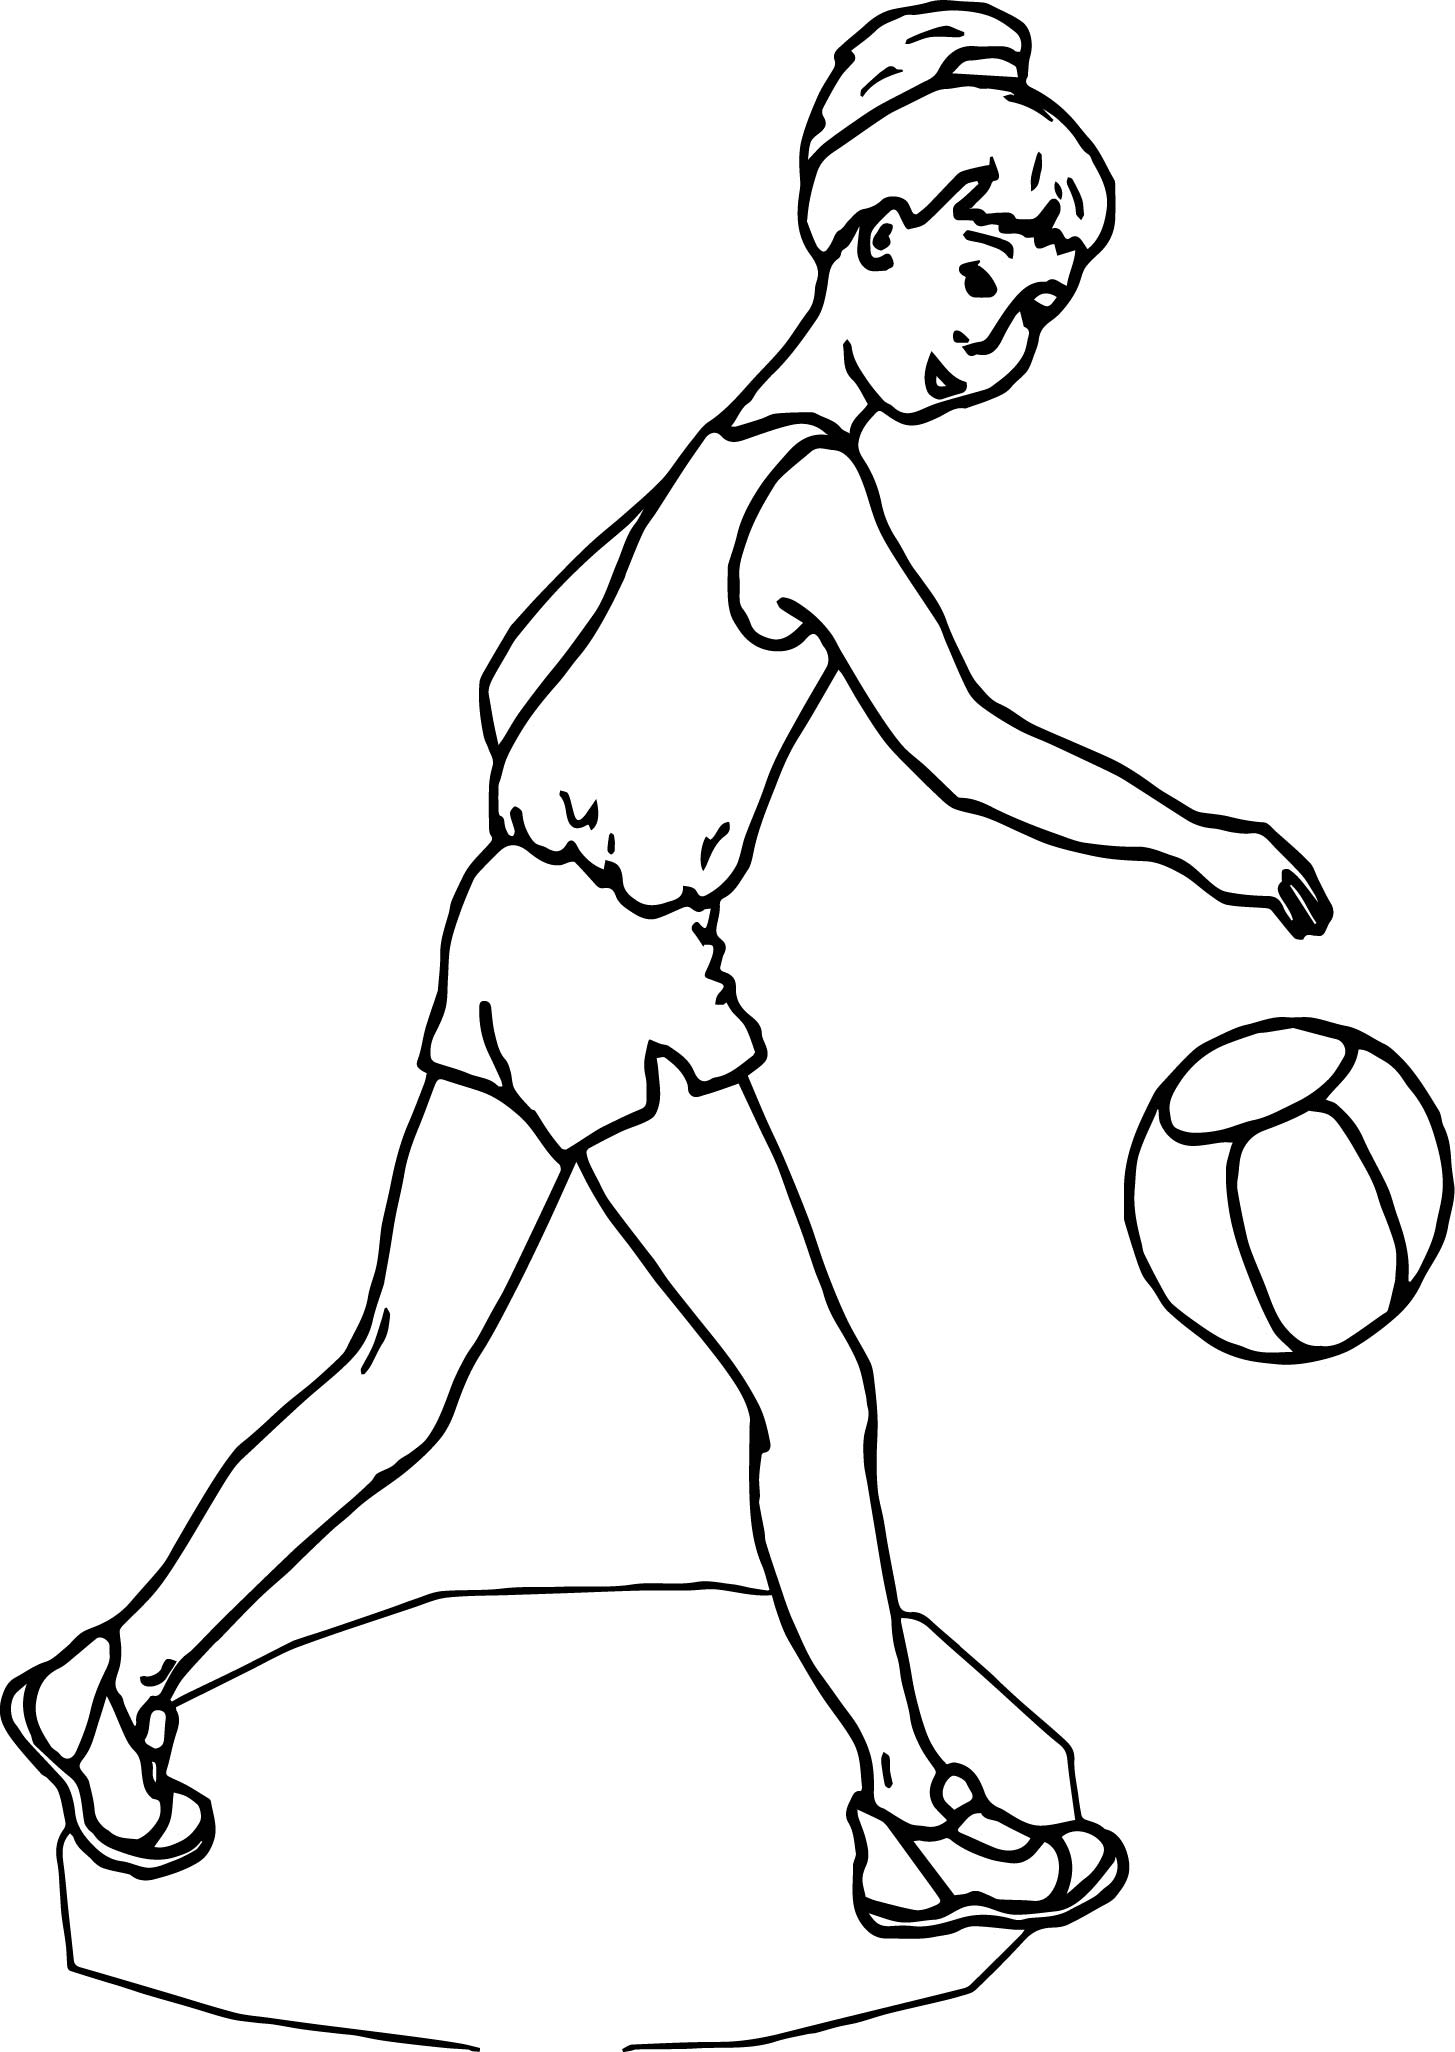 Girl Ball Voleyball Coloring Page